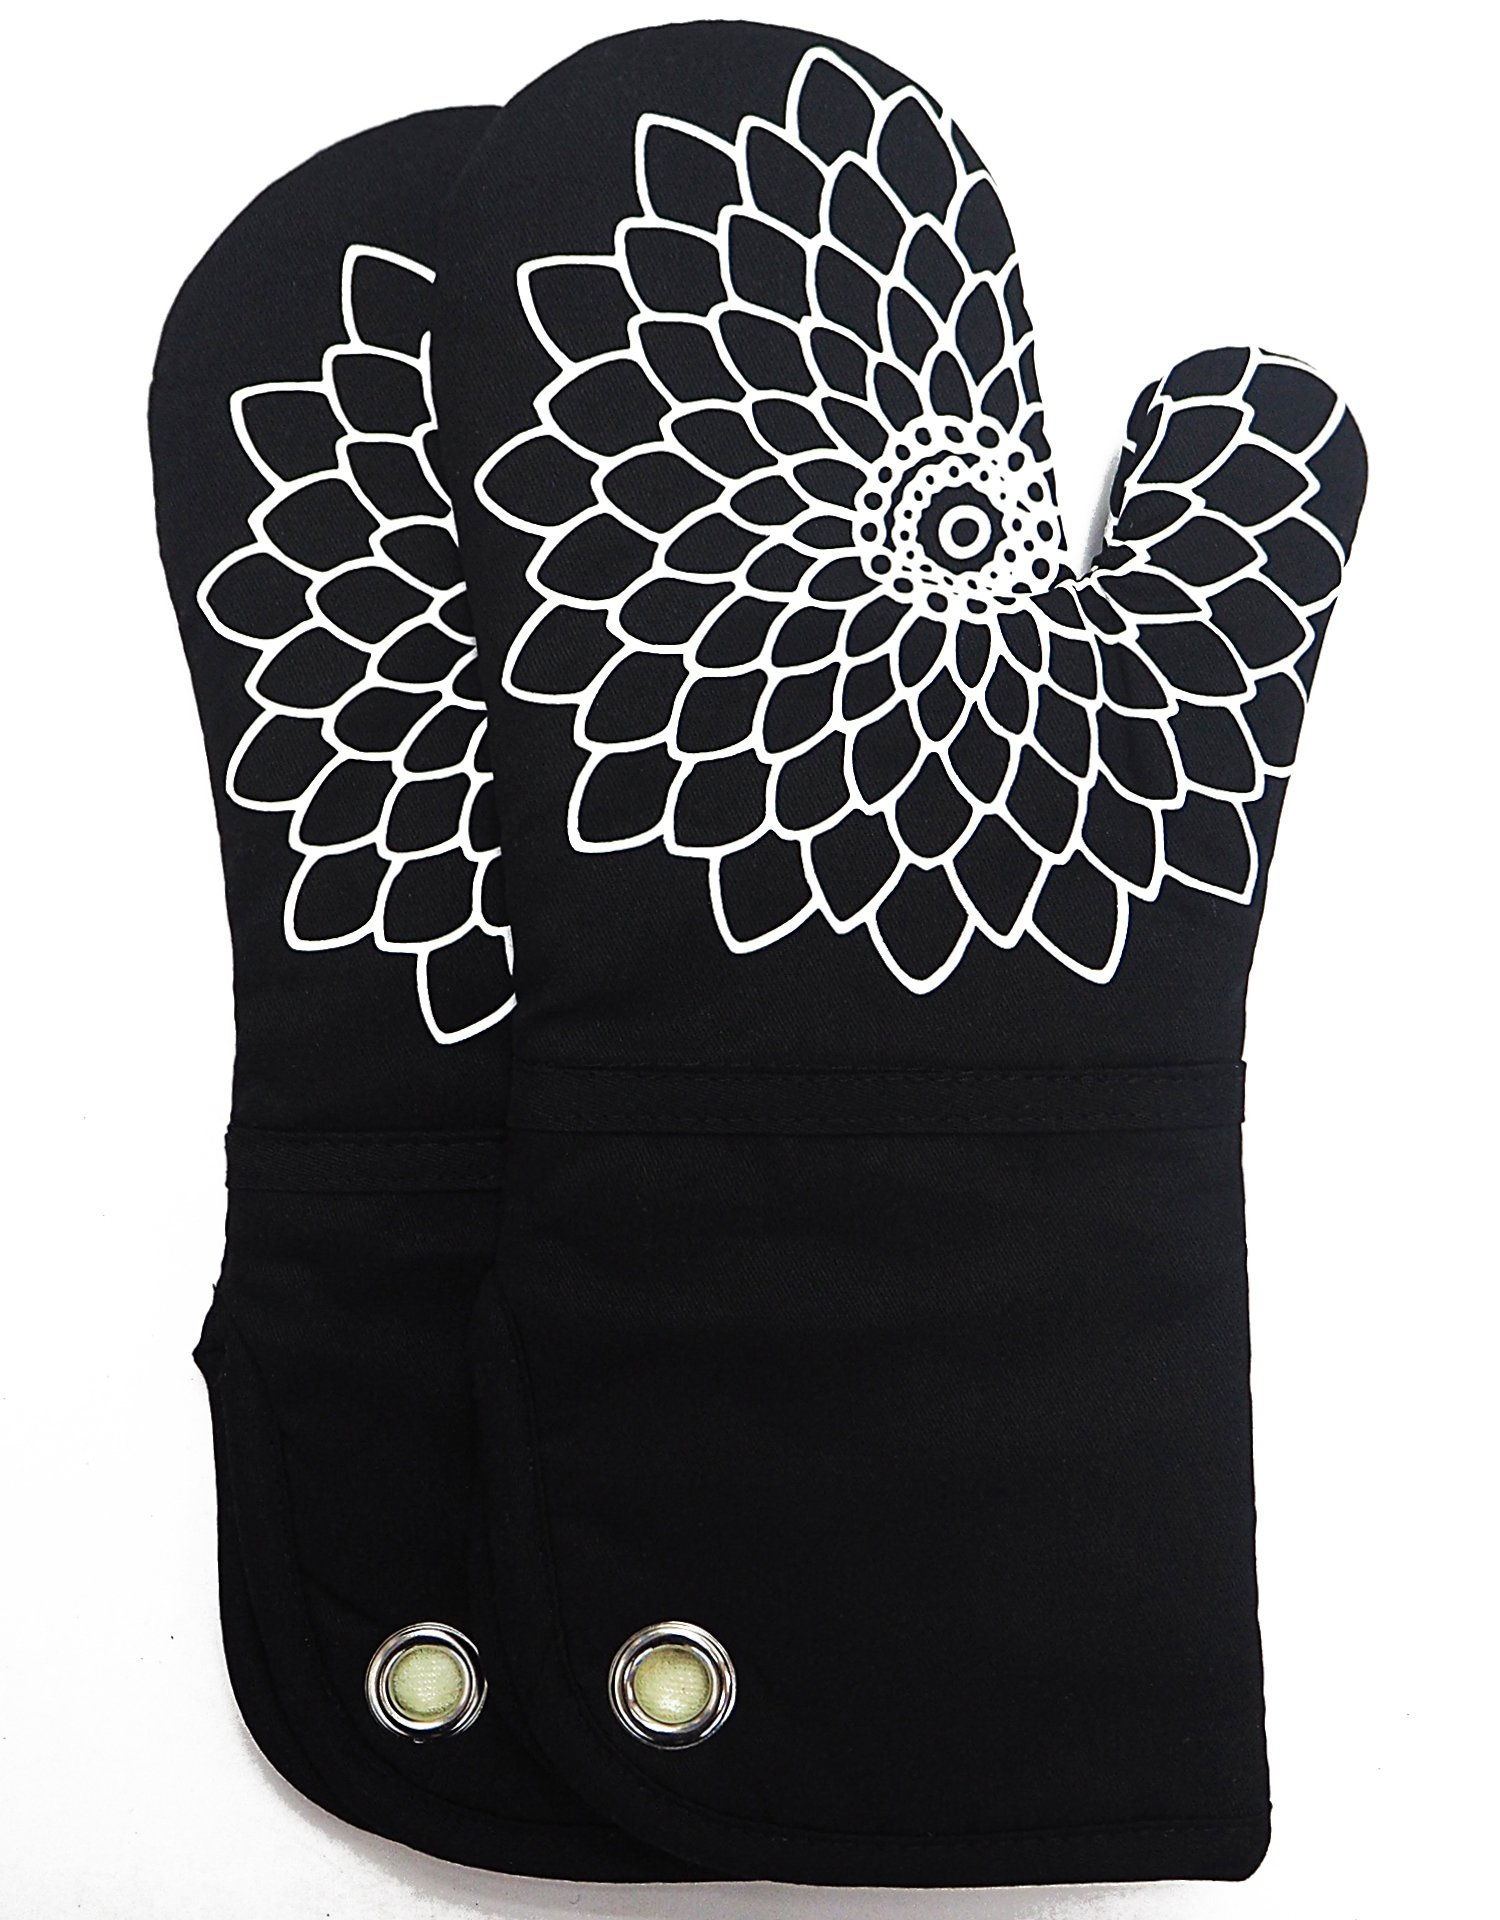 Silicone Printing Oven Mitts/Gloves 1 Pair, Heat Resistant to 500 Degree, Non-Slip for Home Kitchen Cooking Barbecue Microwave for Women/Men Machine Washable BBQ(Black)